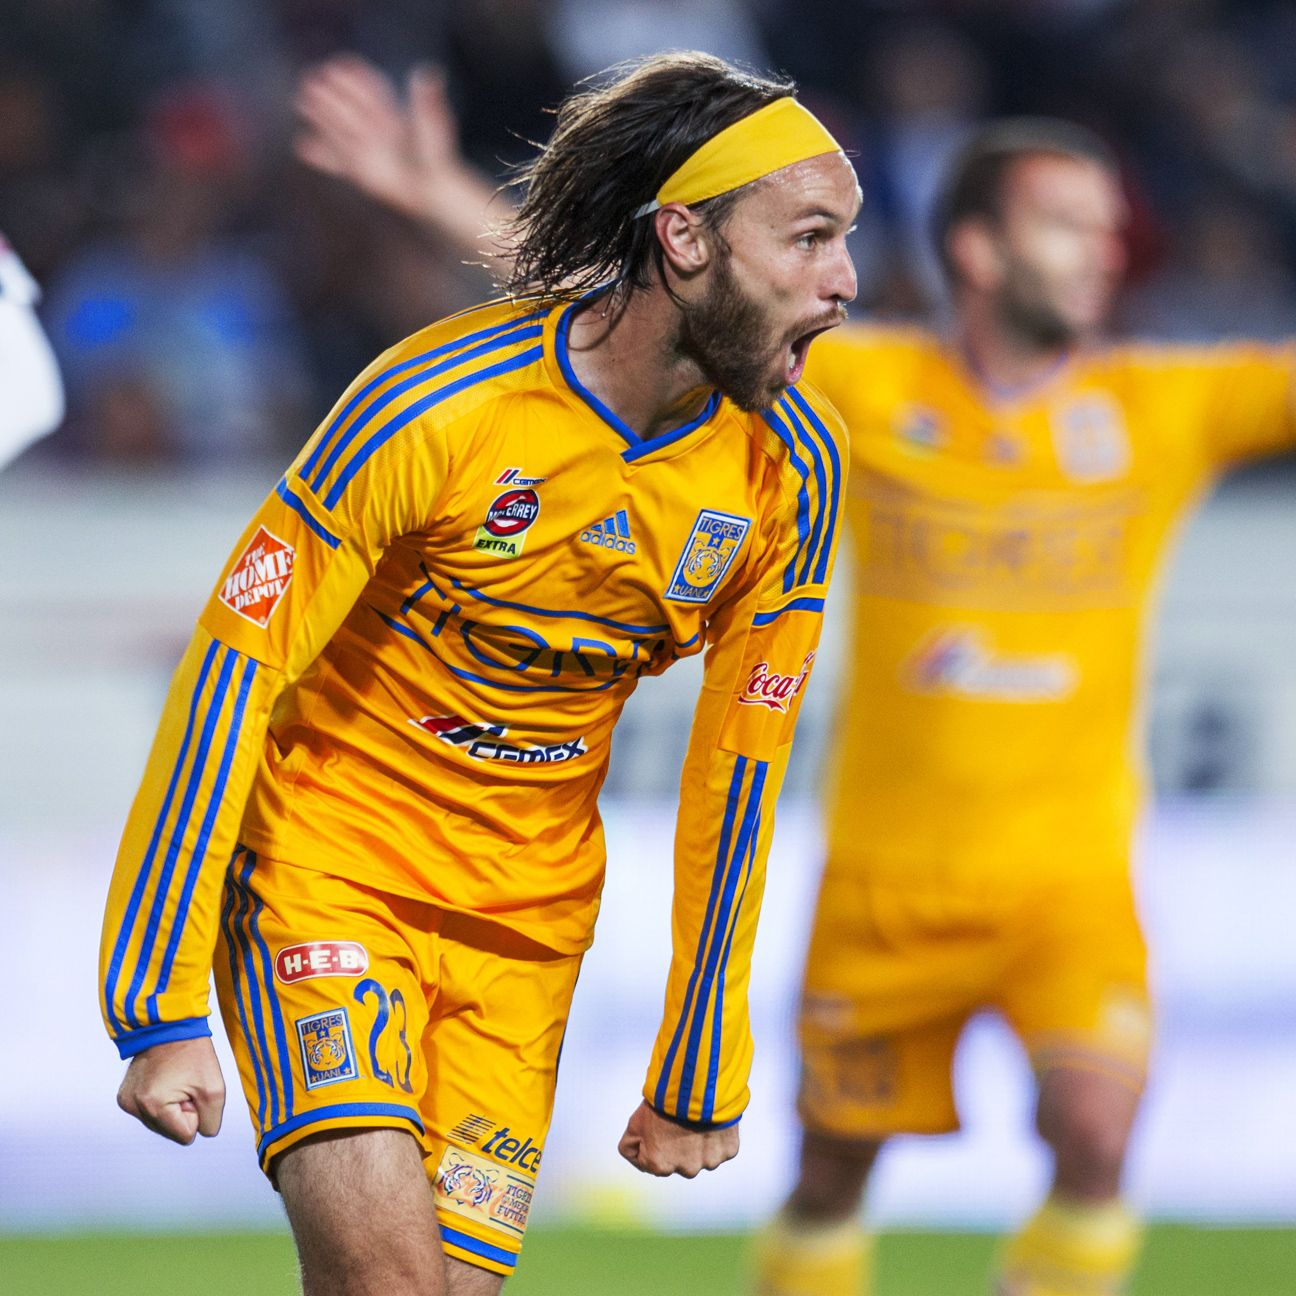 Gerardo Lugo and Tigres continued their rise up the Liga MX table after a thrilling win over Pachuca.